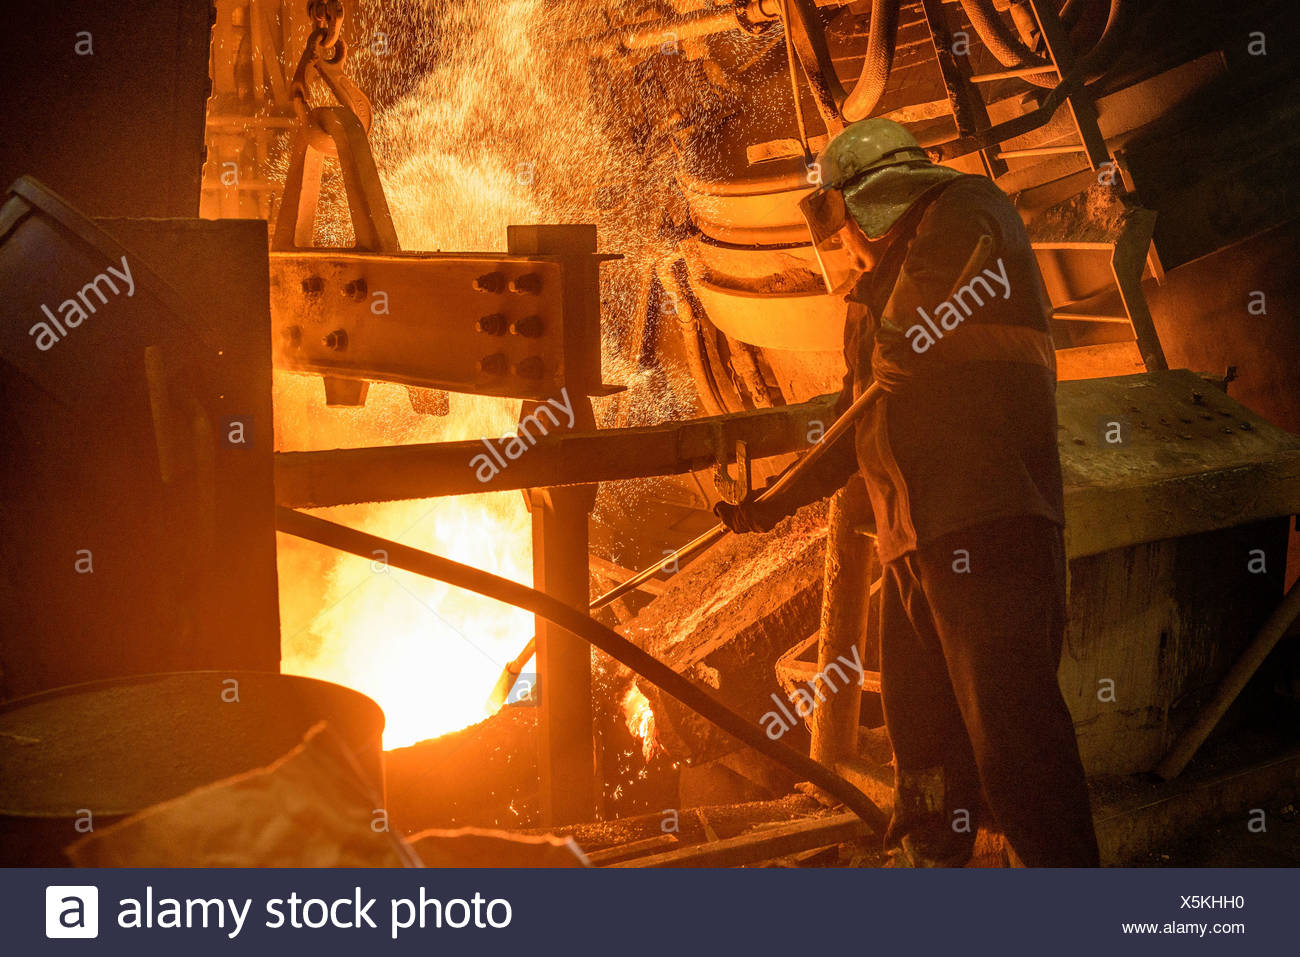 Steel worker looking down at furnace in steel foundry - Stock Image